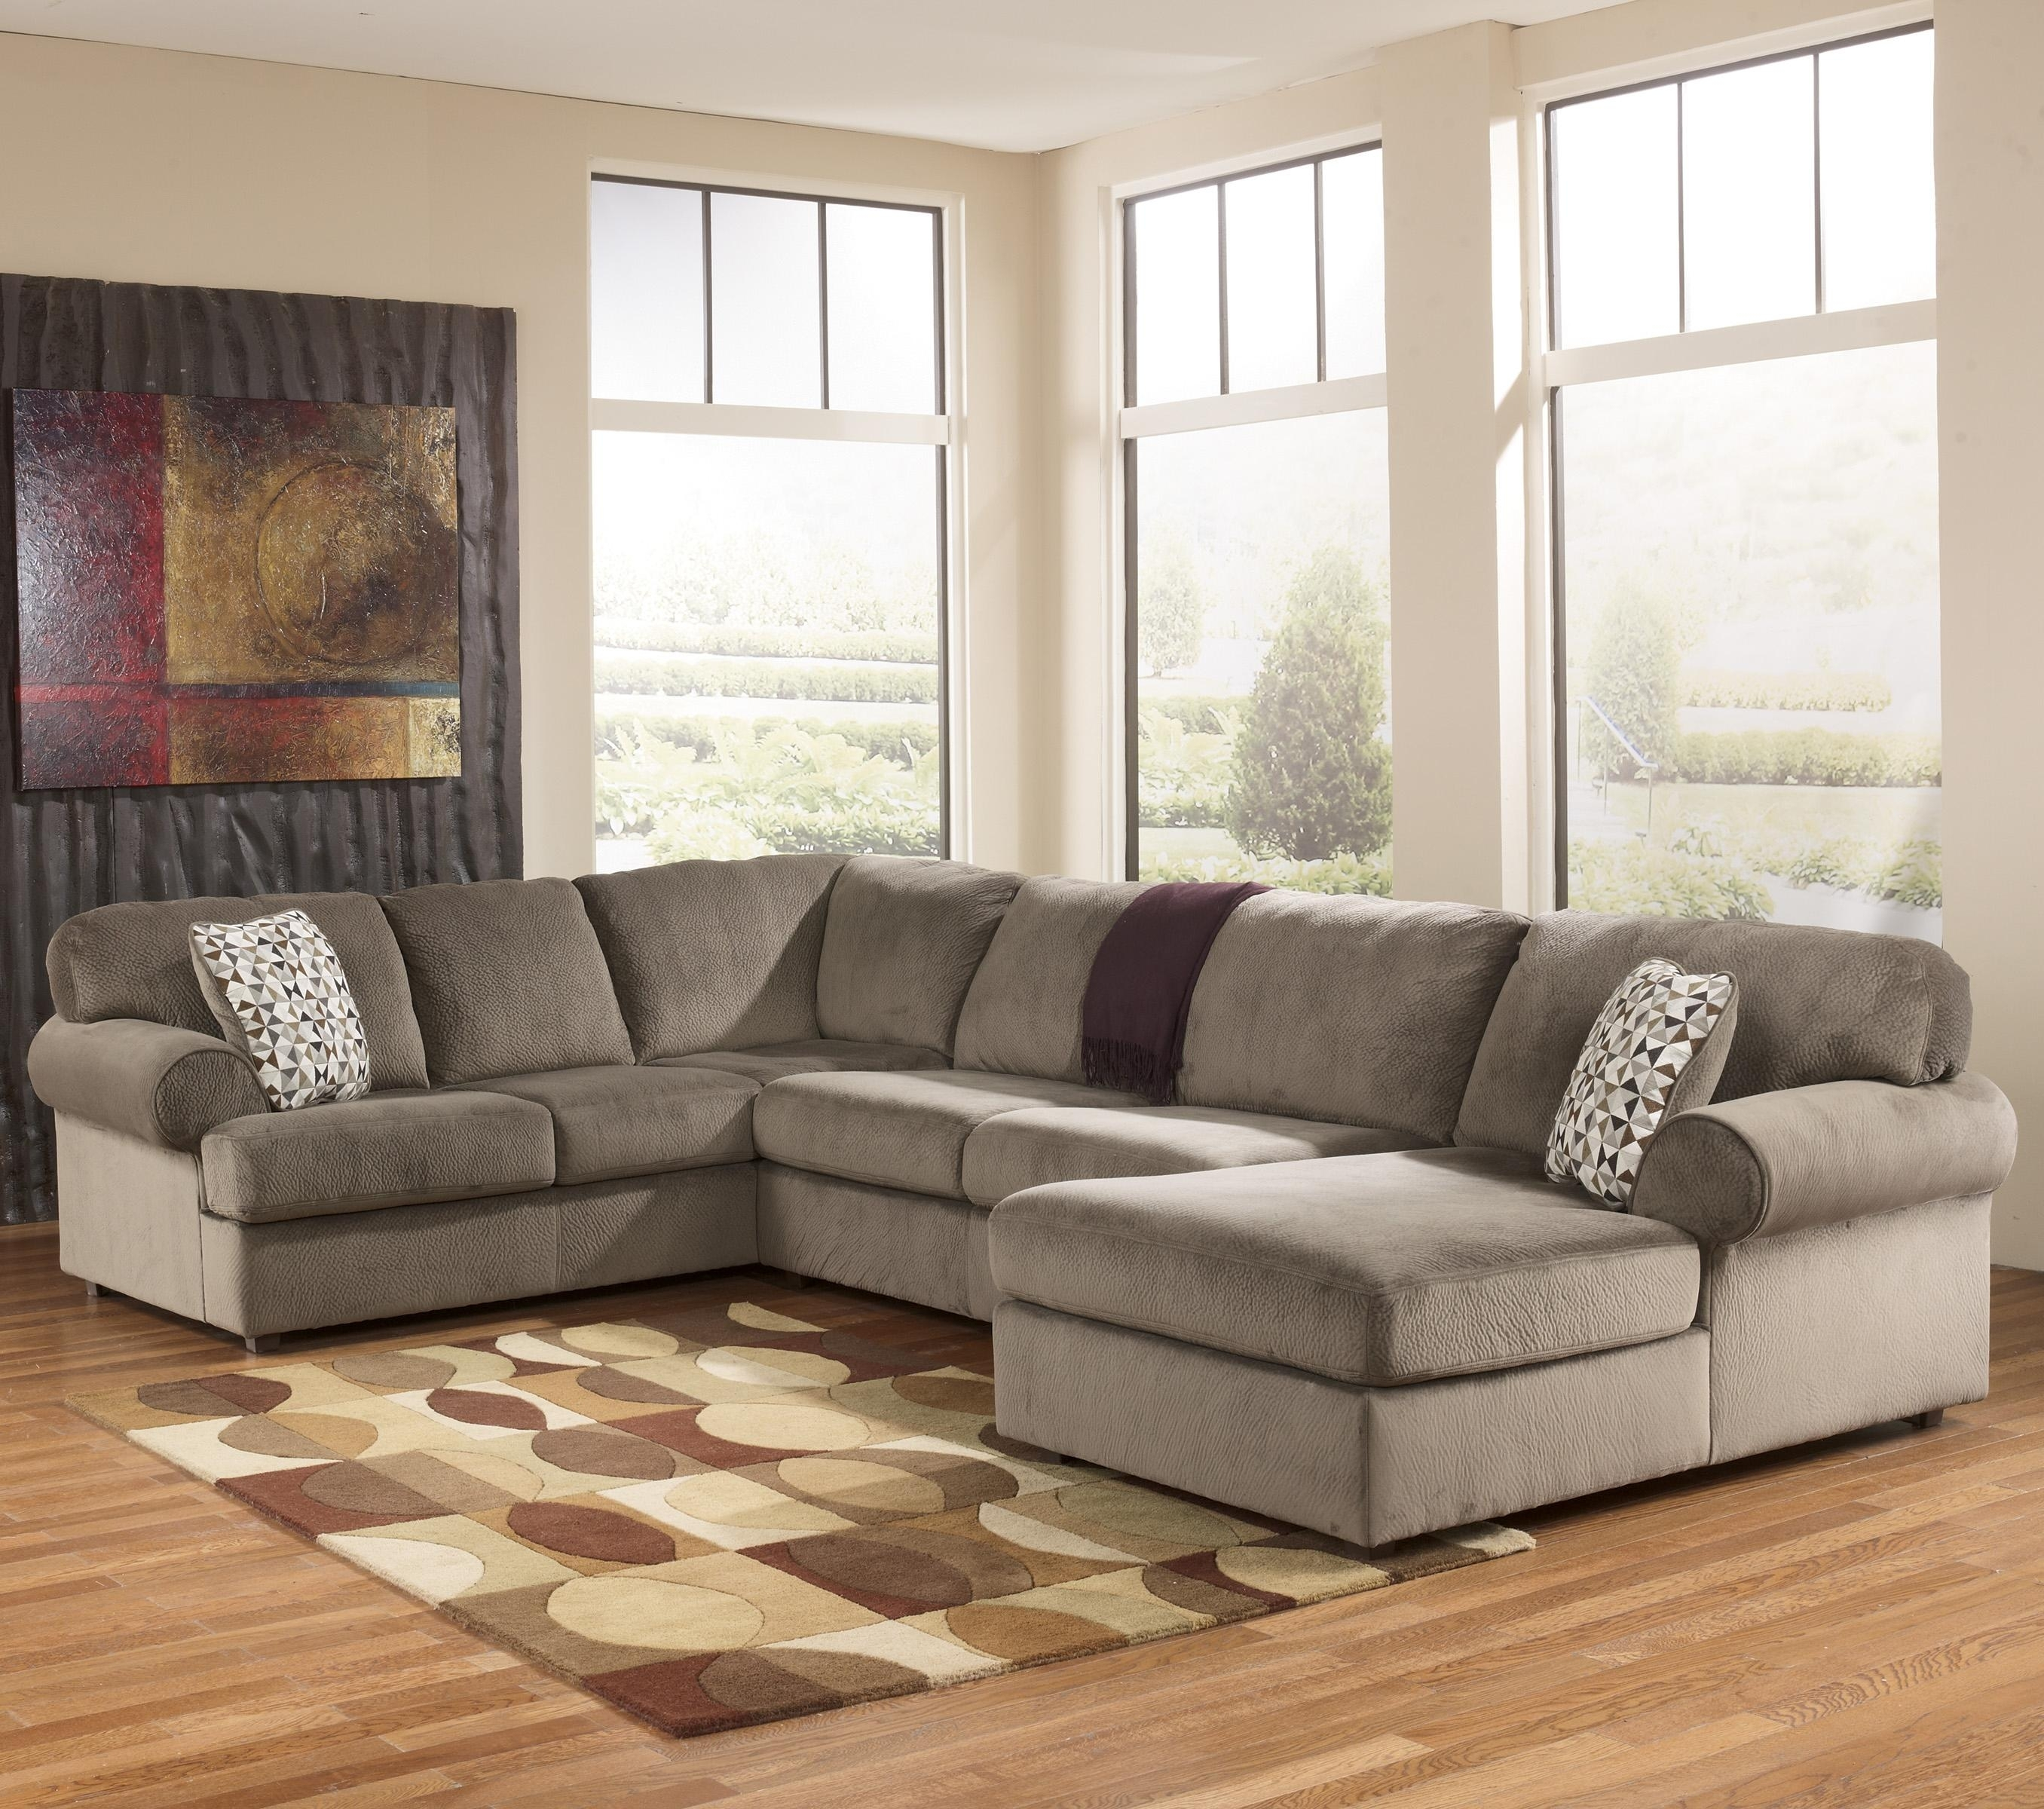 Signature Designashley Jessa Place – Dune Casual Sectional Sofa Within El Paso Texas Sectional Sofas (View 9 of 10)